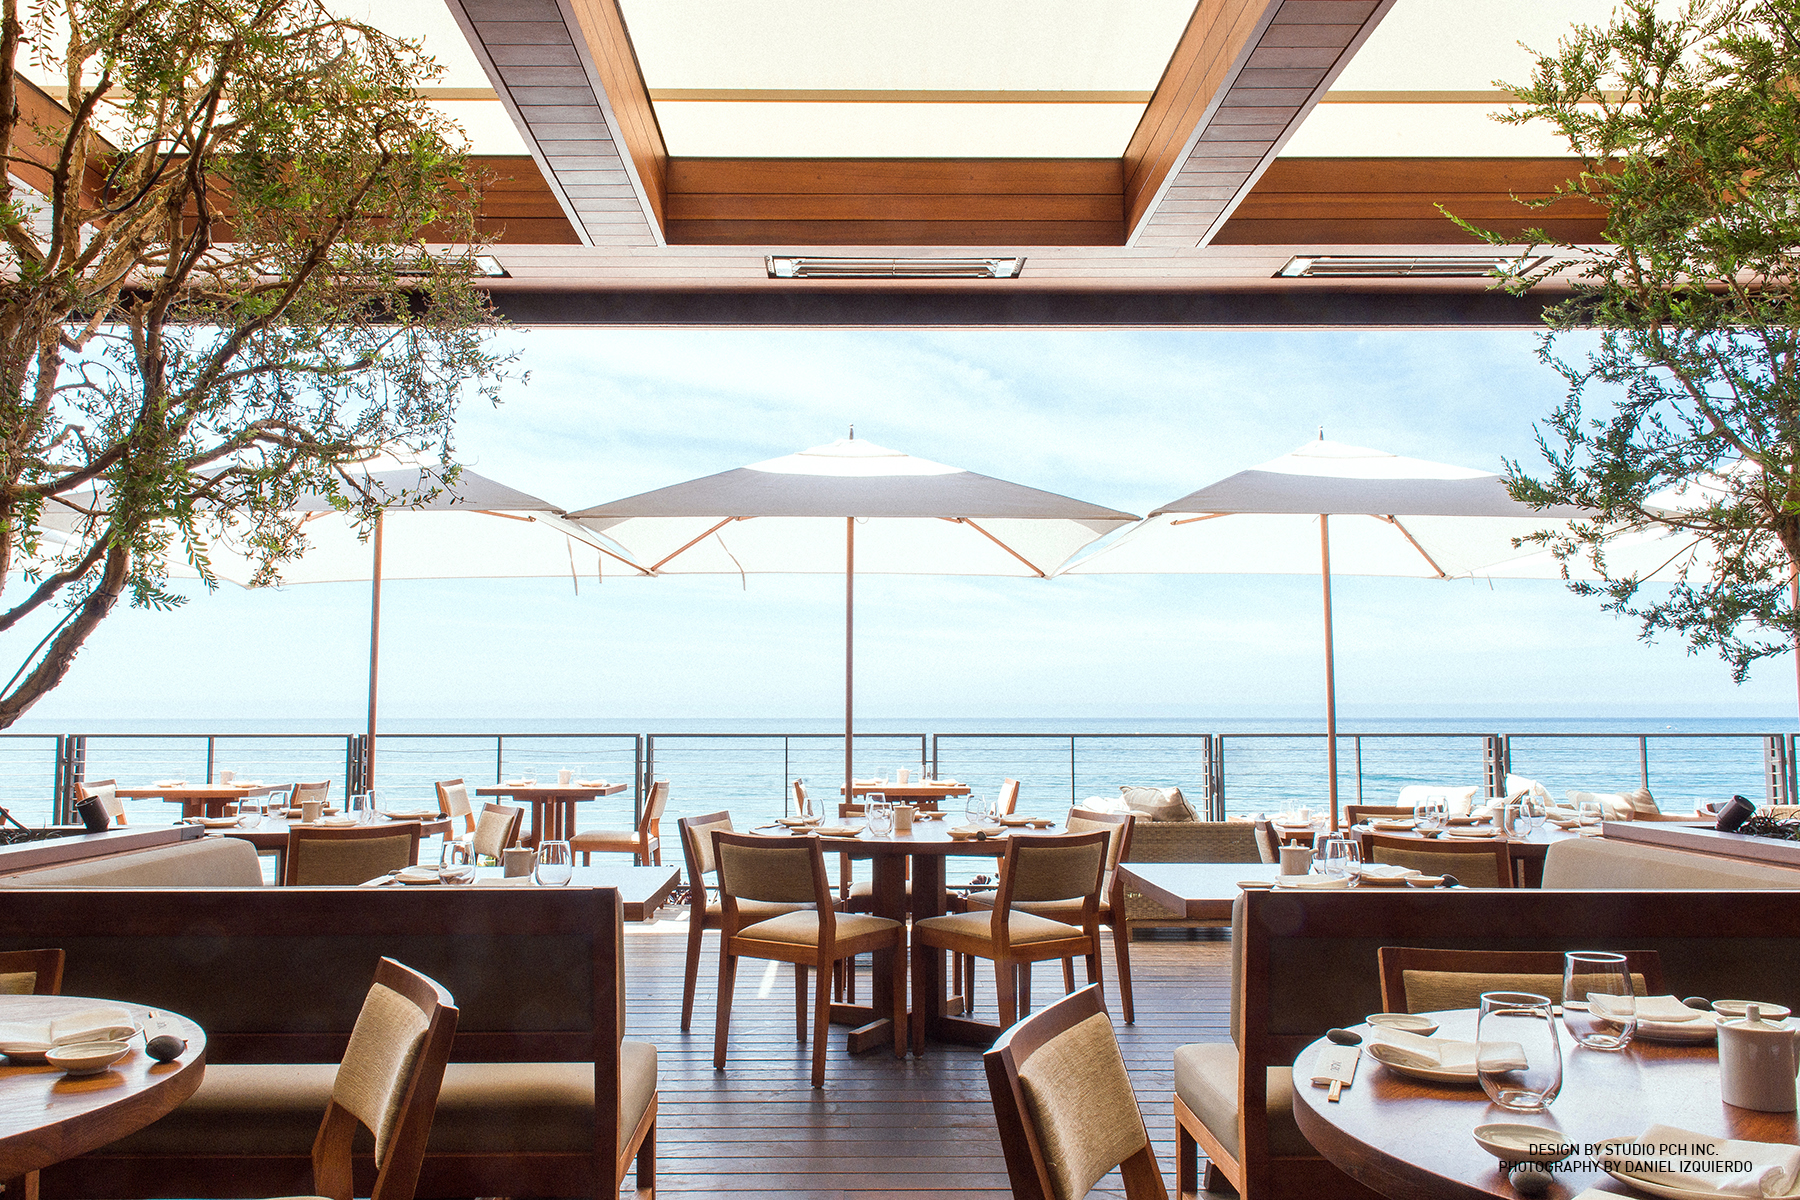 My whole family loves going to Nobu Malibu for meals. Photo by Nobu.